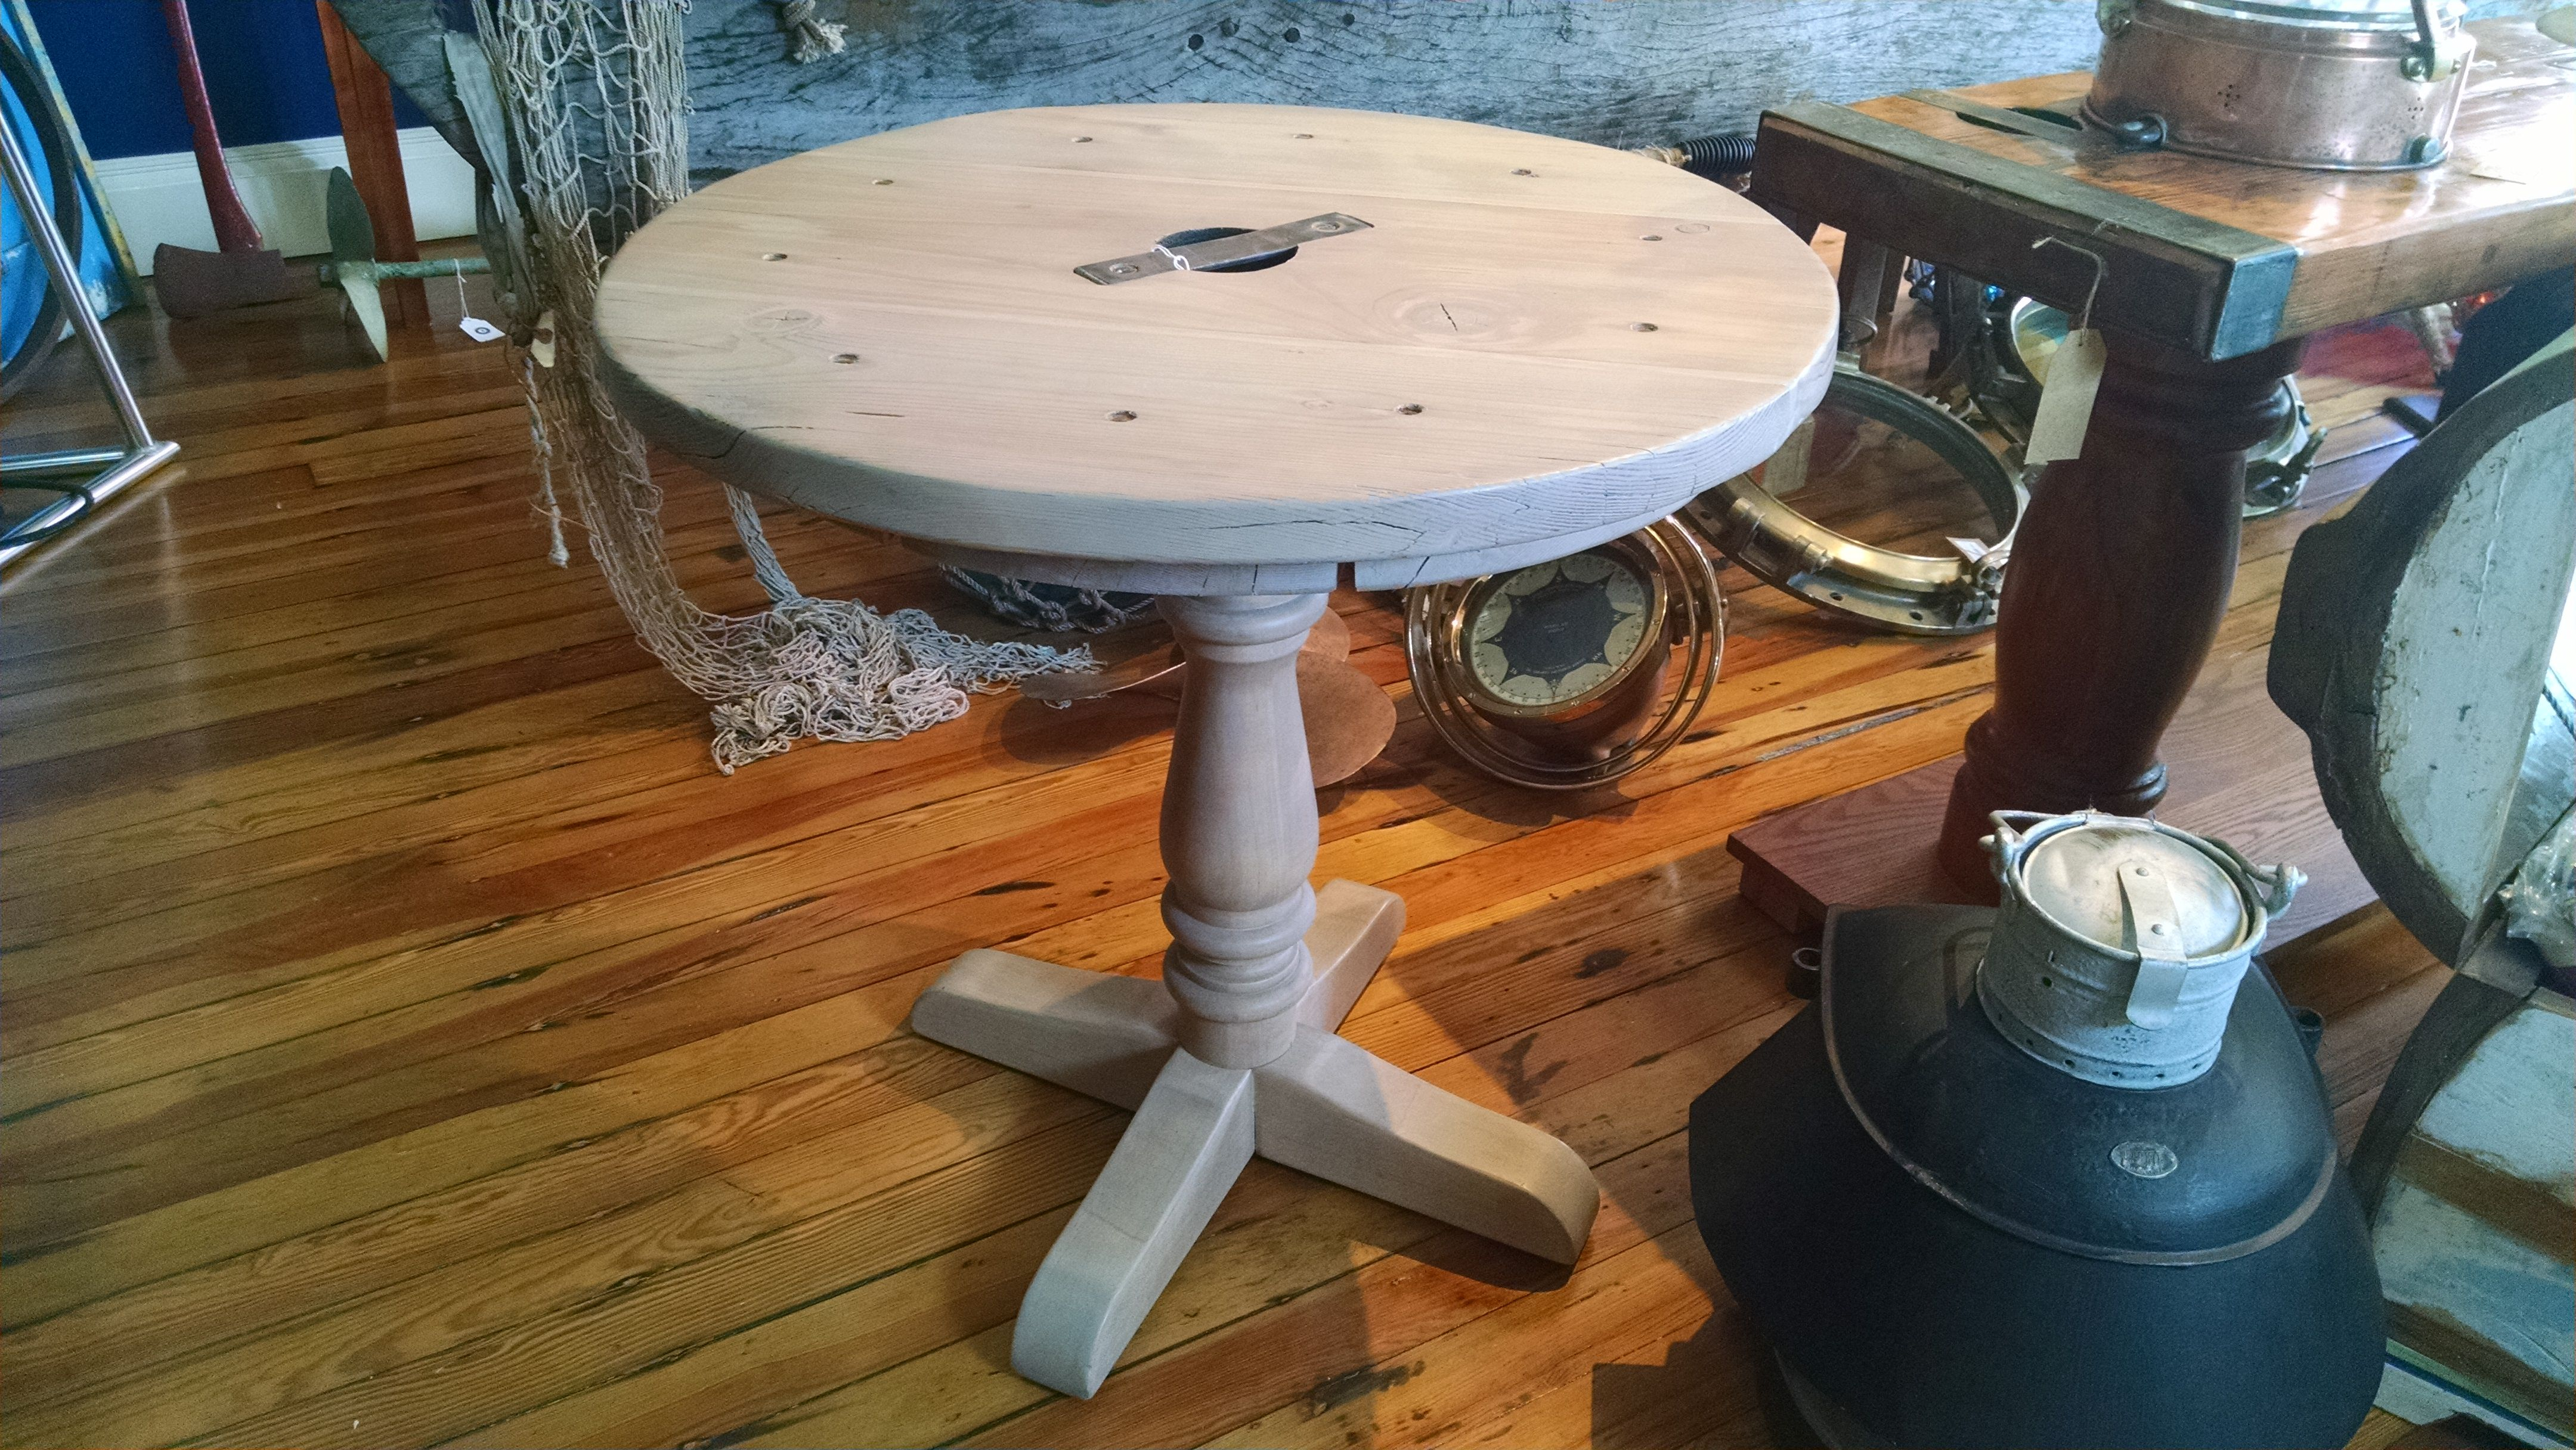 #Poker anyone? #Liberty #ship #hatch #cover #table: #Round with #driftwood stain